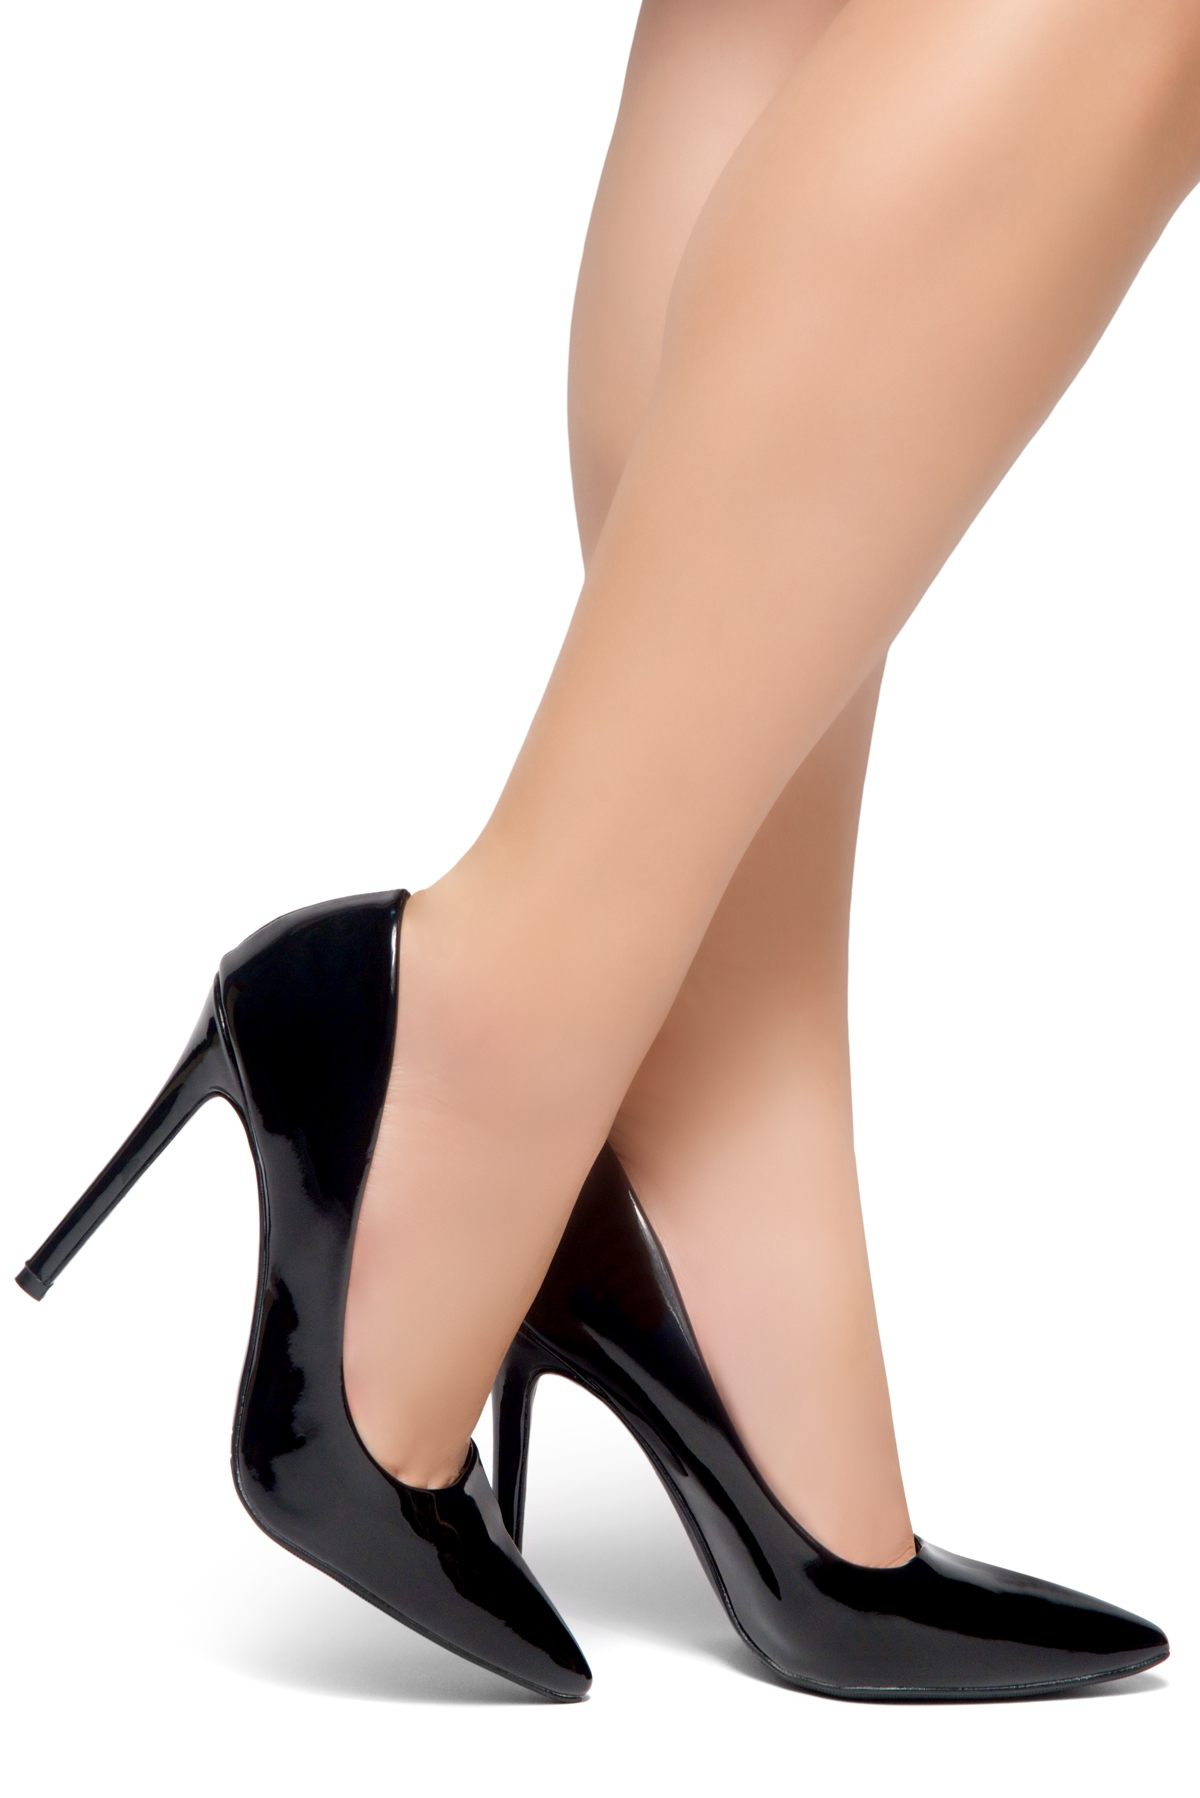 9293fcbef89 HerStyle Marneena-Women s Manmade 4-inch Sueded Heel with Lightly Pointed  Toe (Black PT)